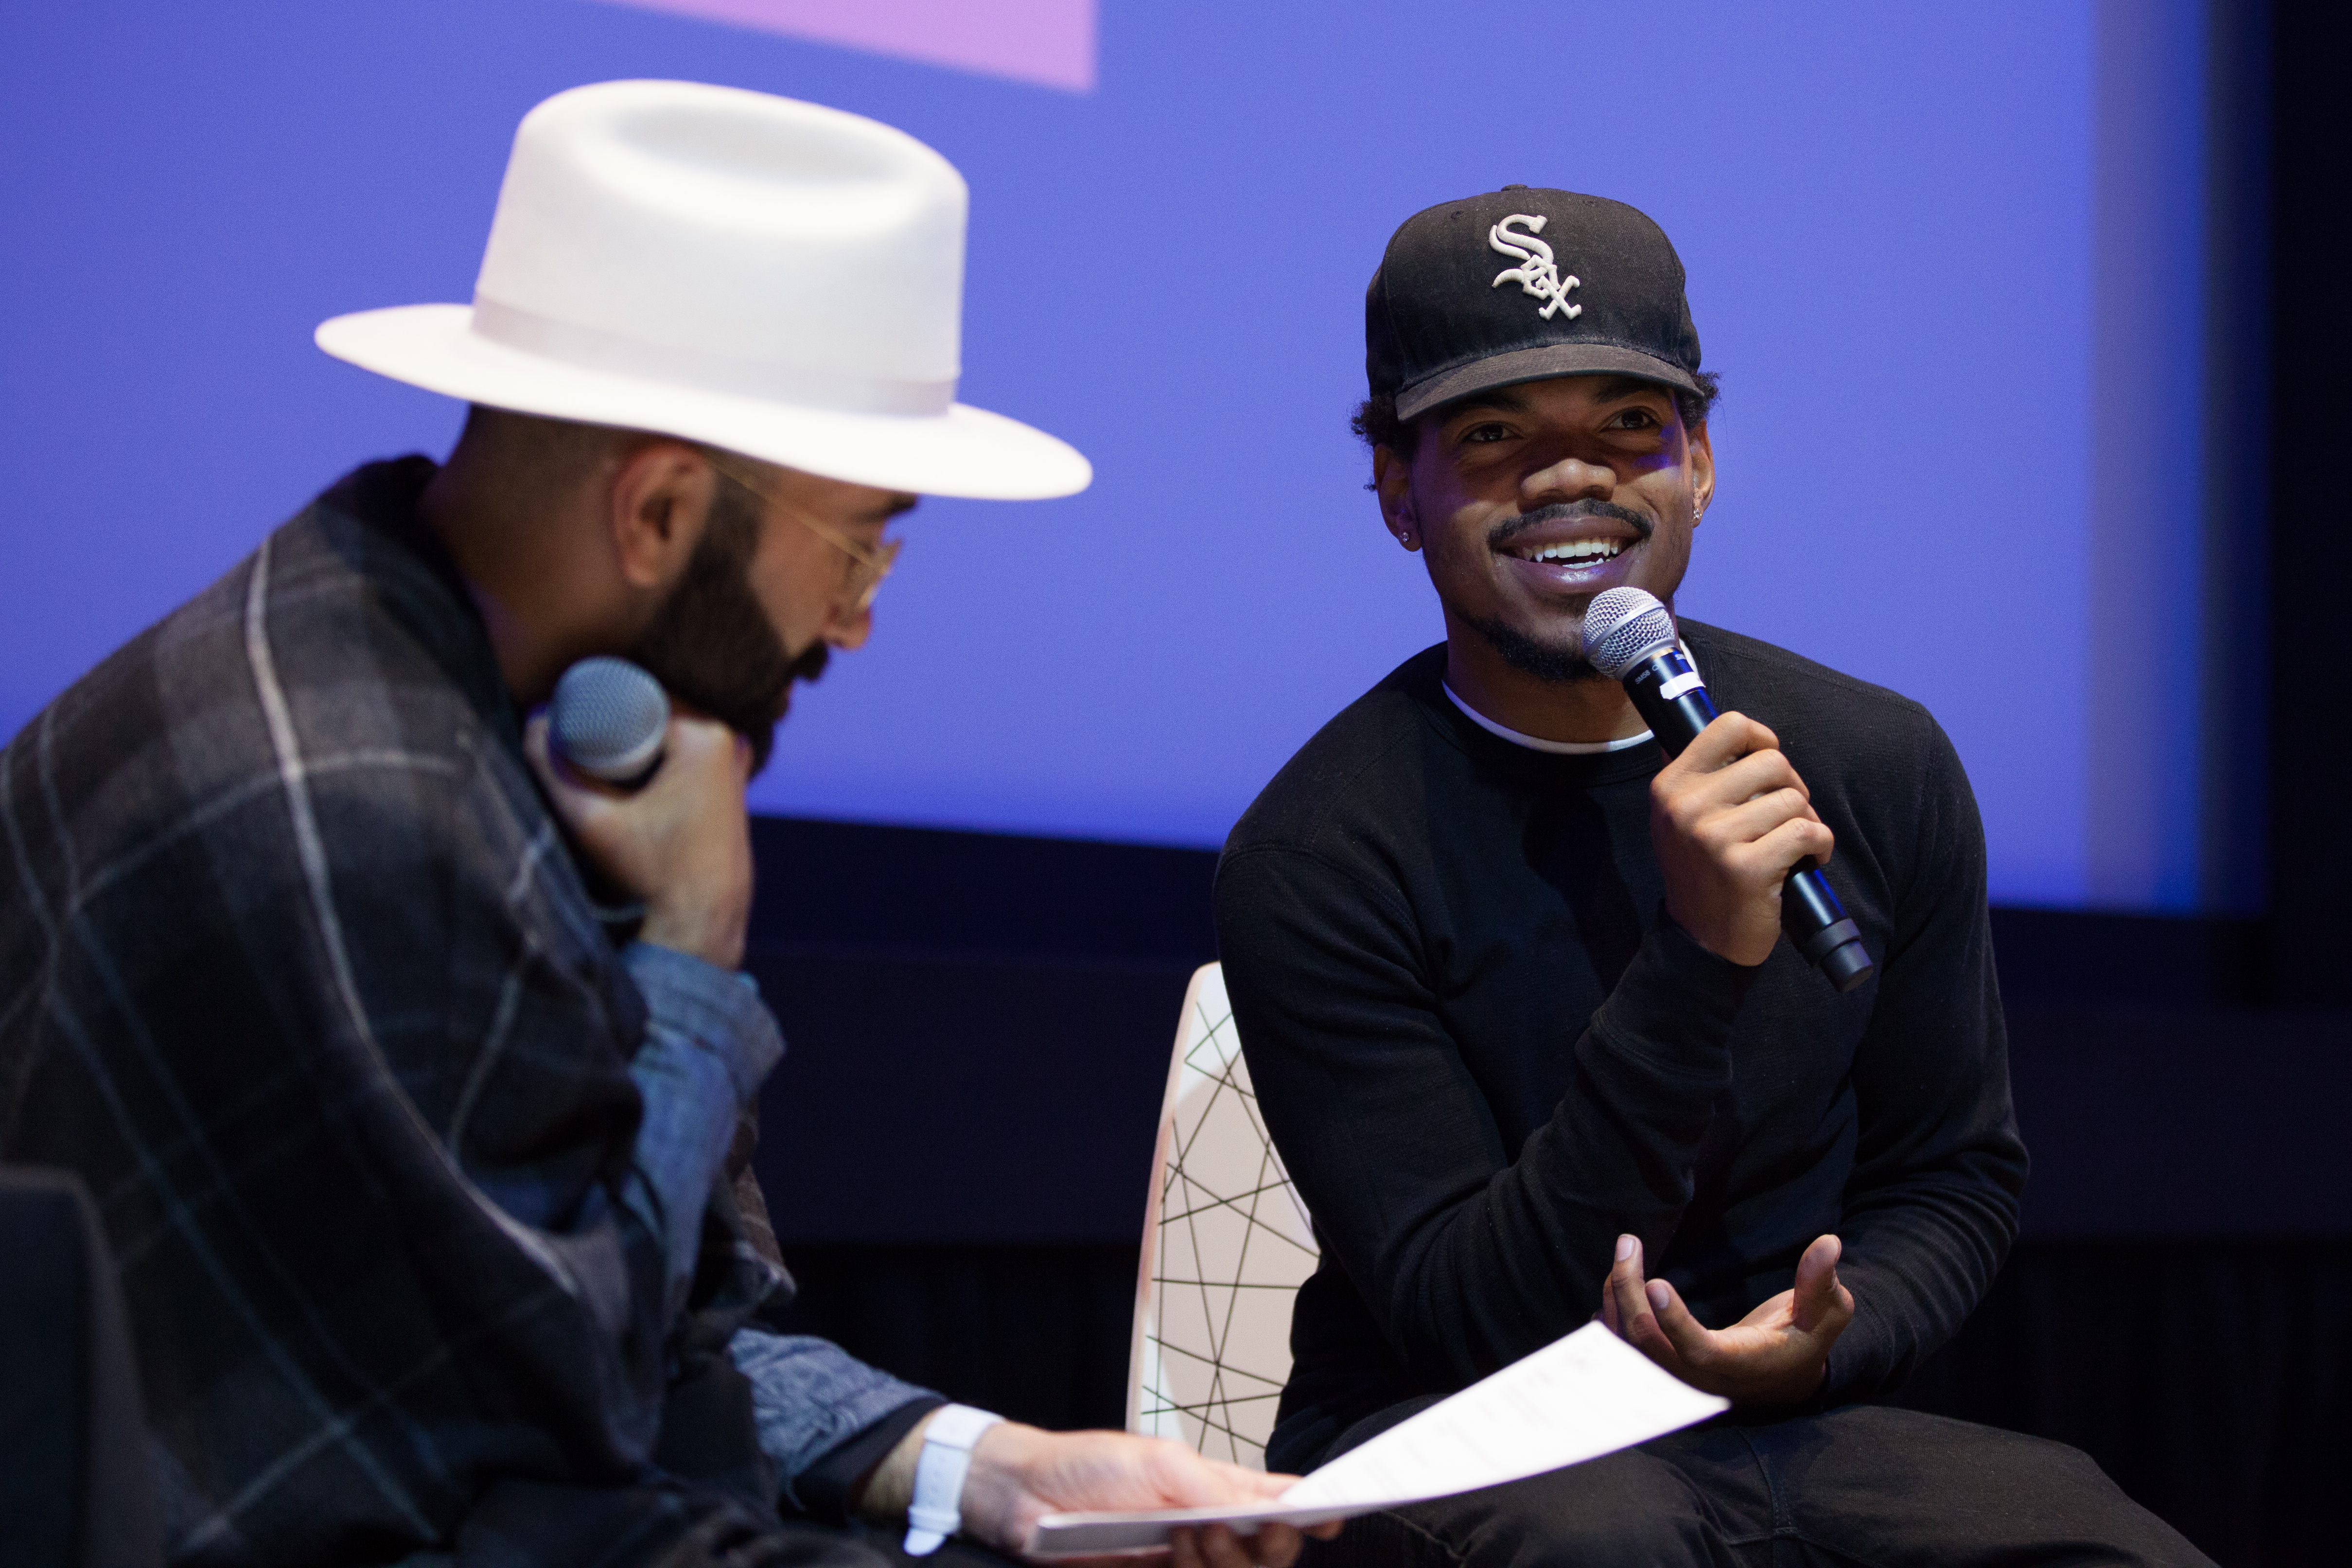 Prior to his show at L'Olympia, Chance the Rapper hung out with none other than Concordia's own The Narcicyst. Photo by Marie-Pierre Savard.